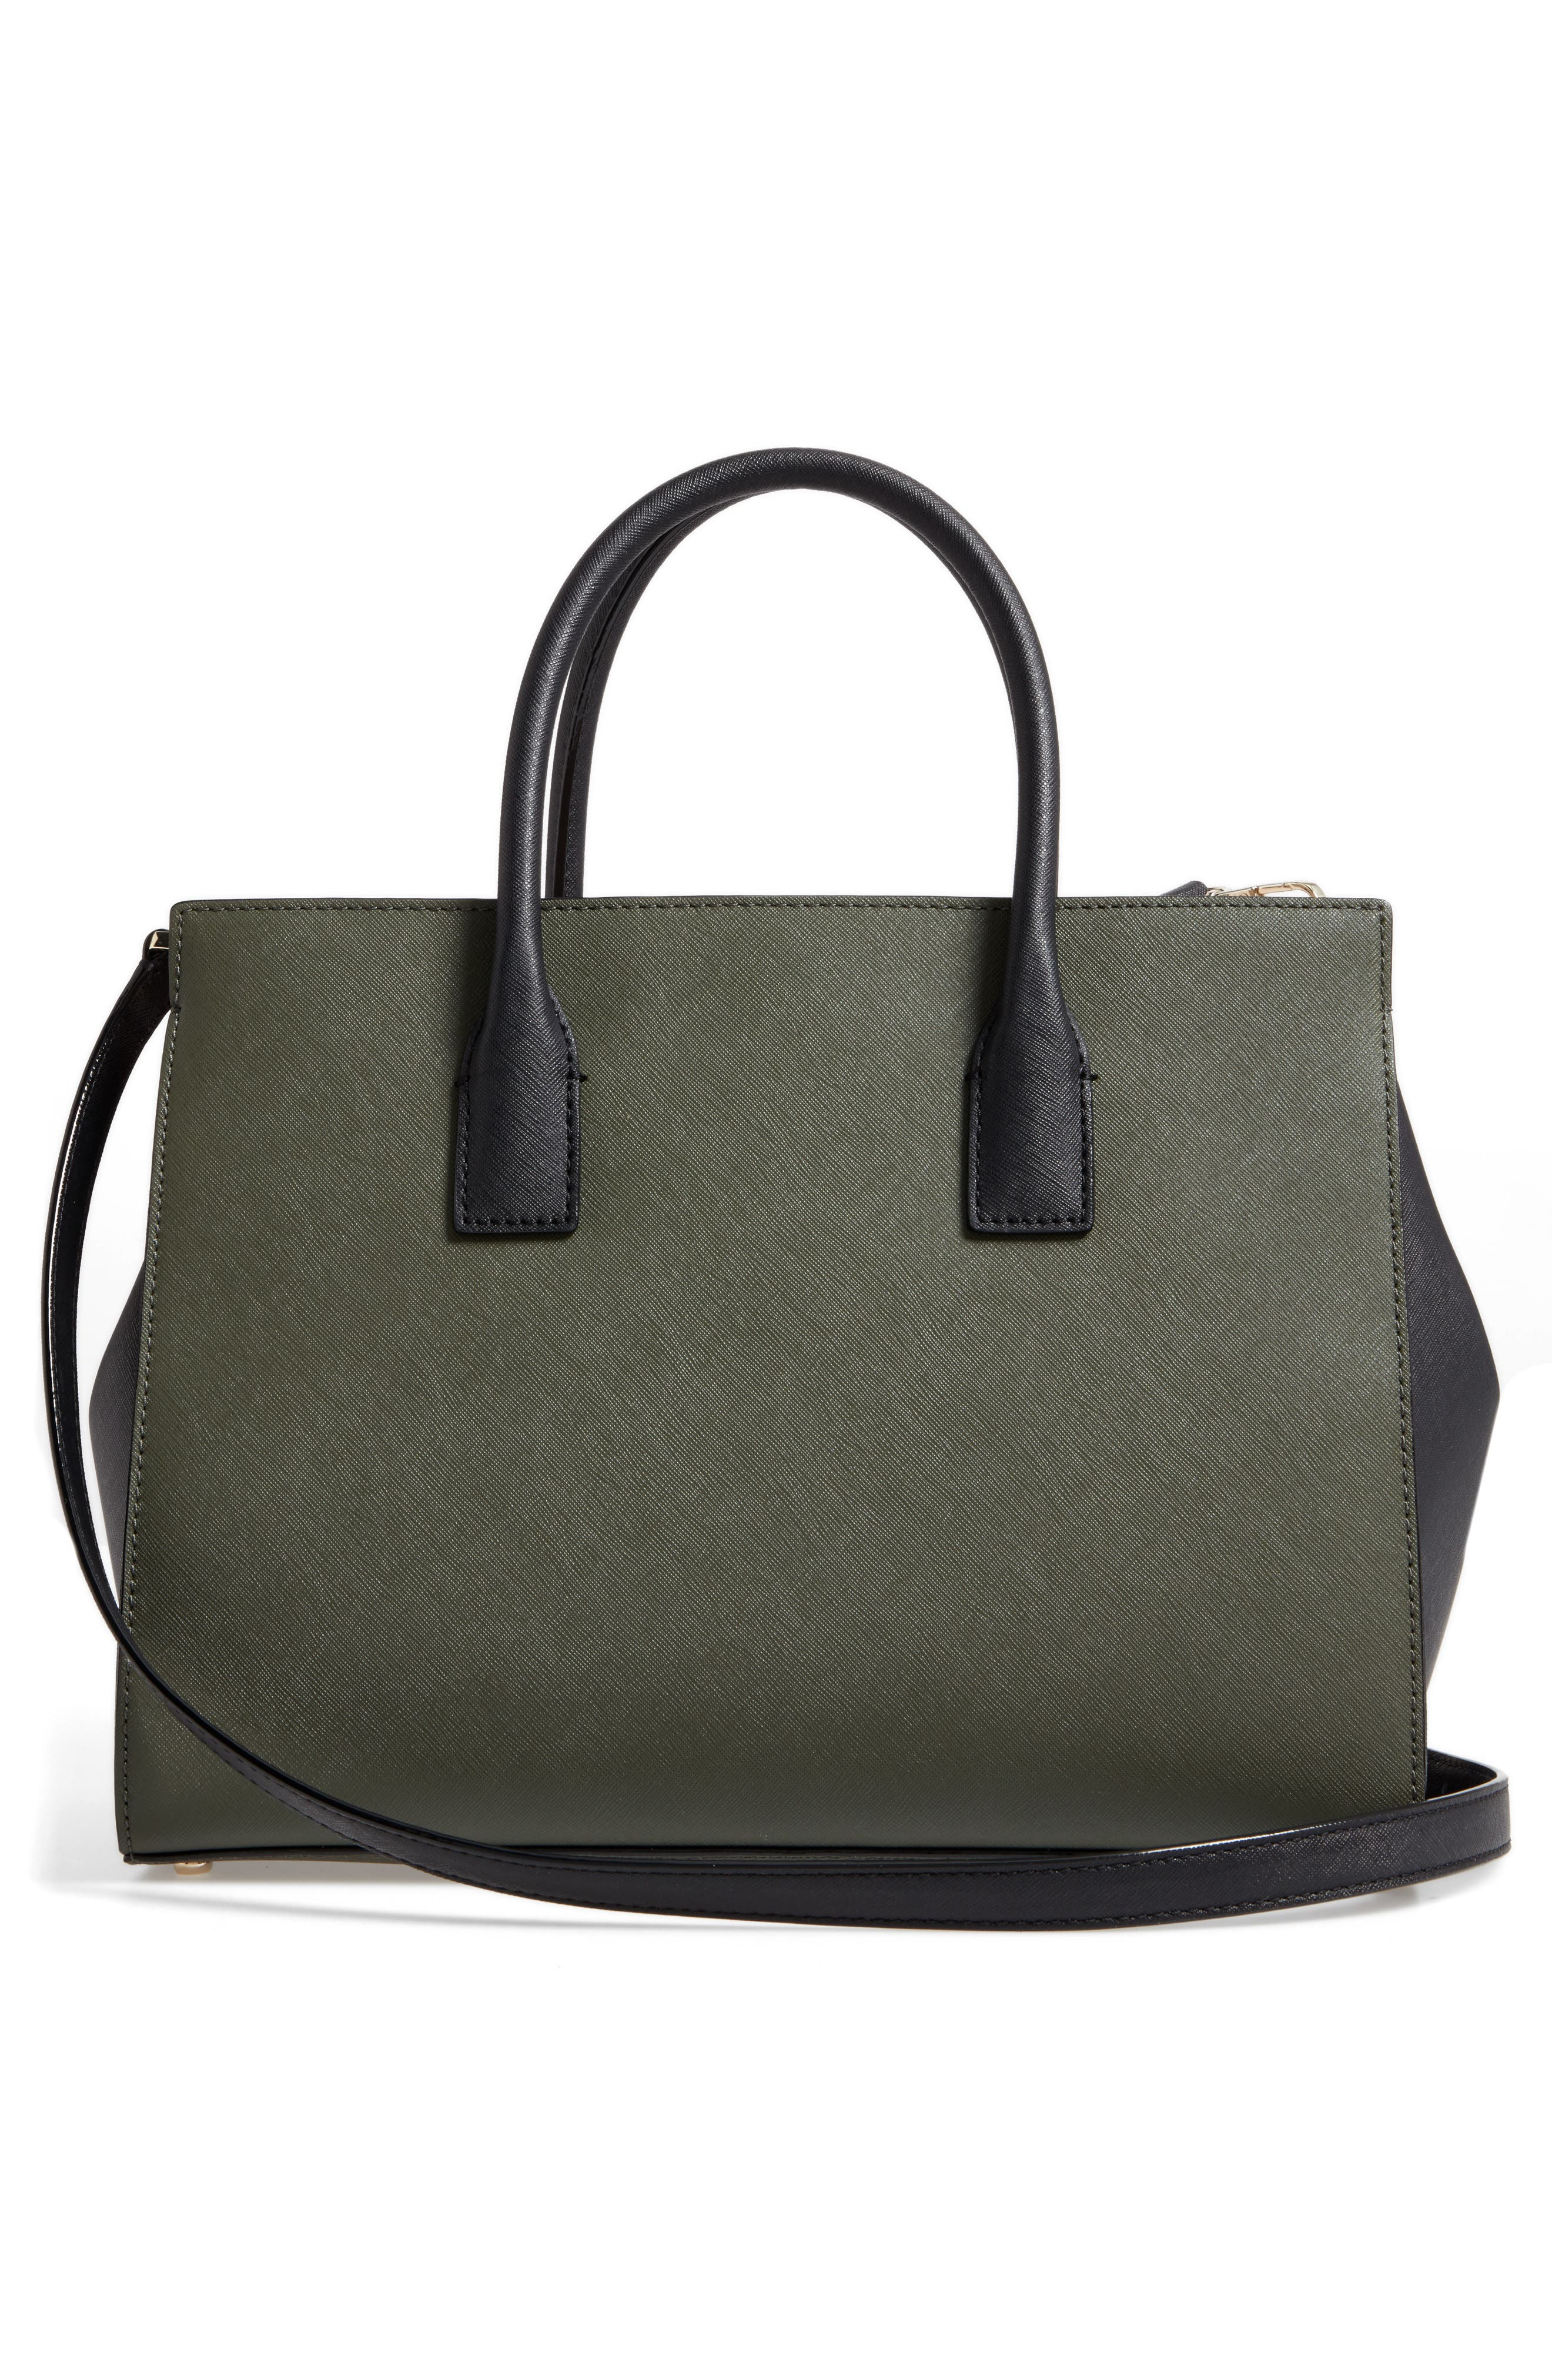 cameron street - candace leather satchel,                             Alternate thumbnail 3, color,                             301